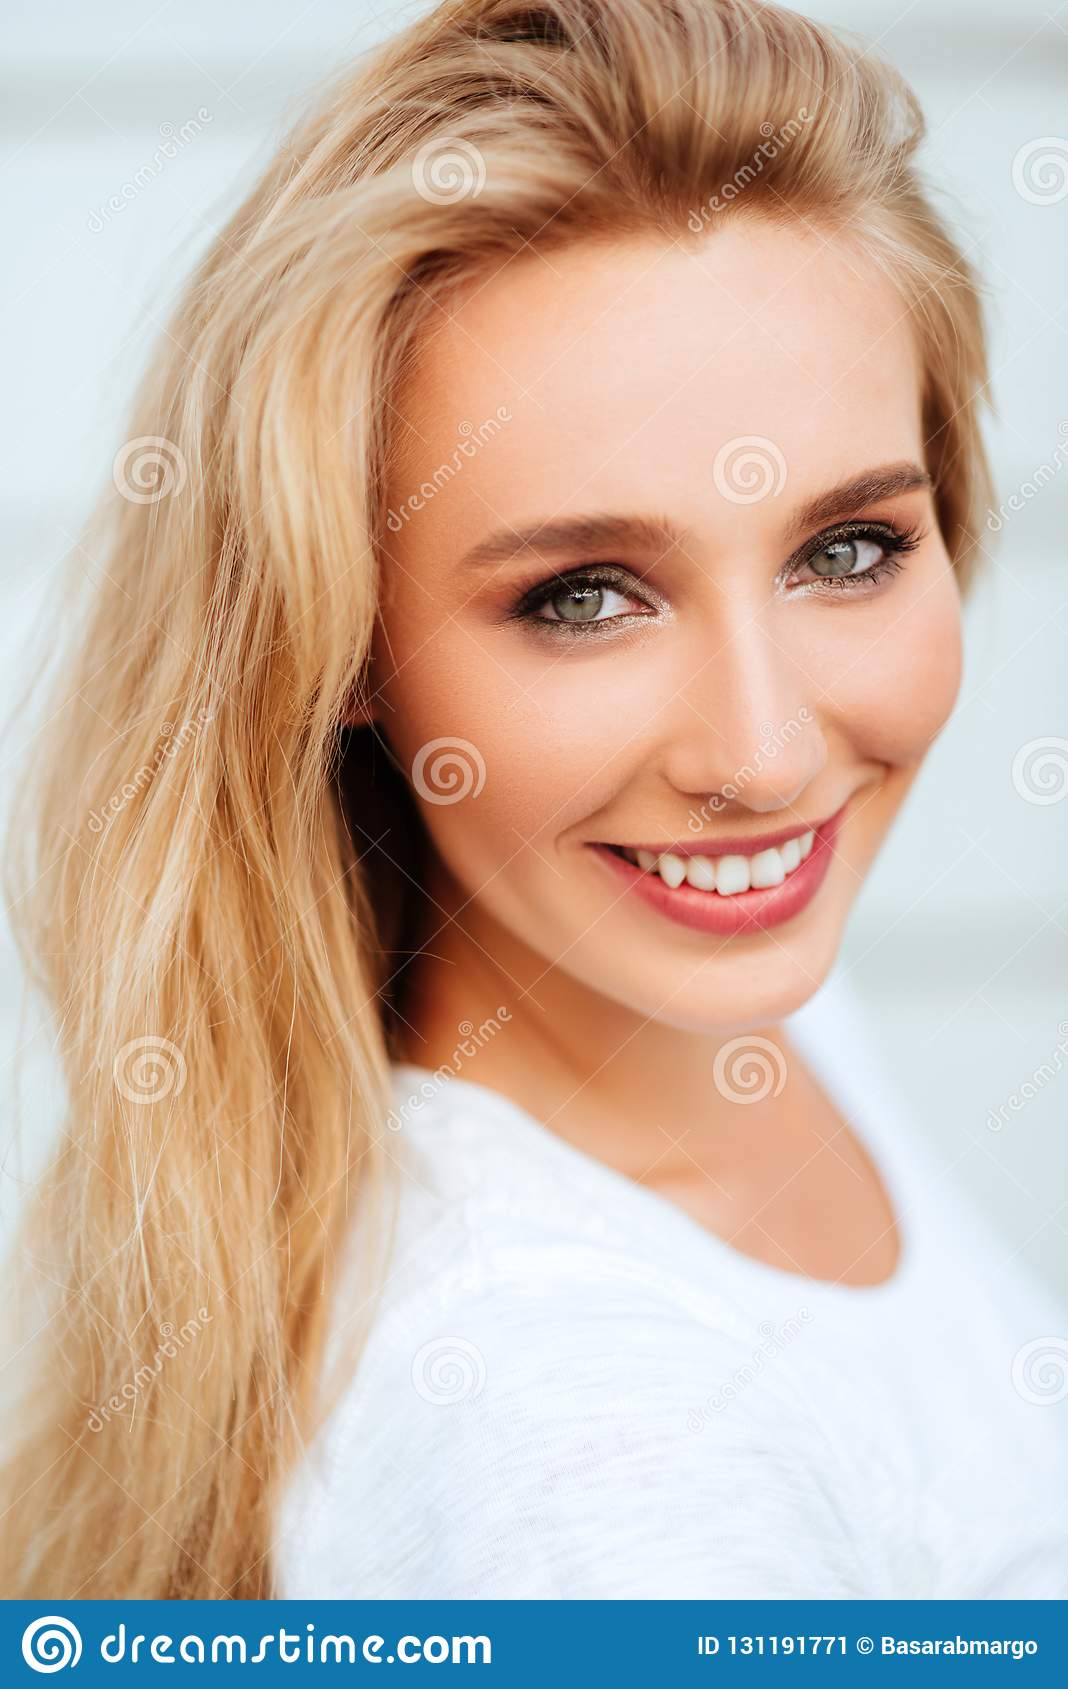 Portrait of blond young woman posing outdoors